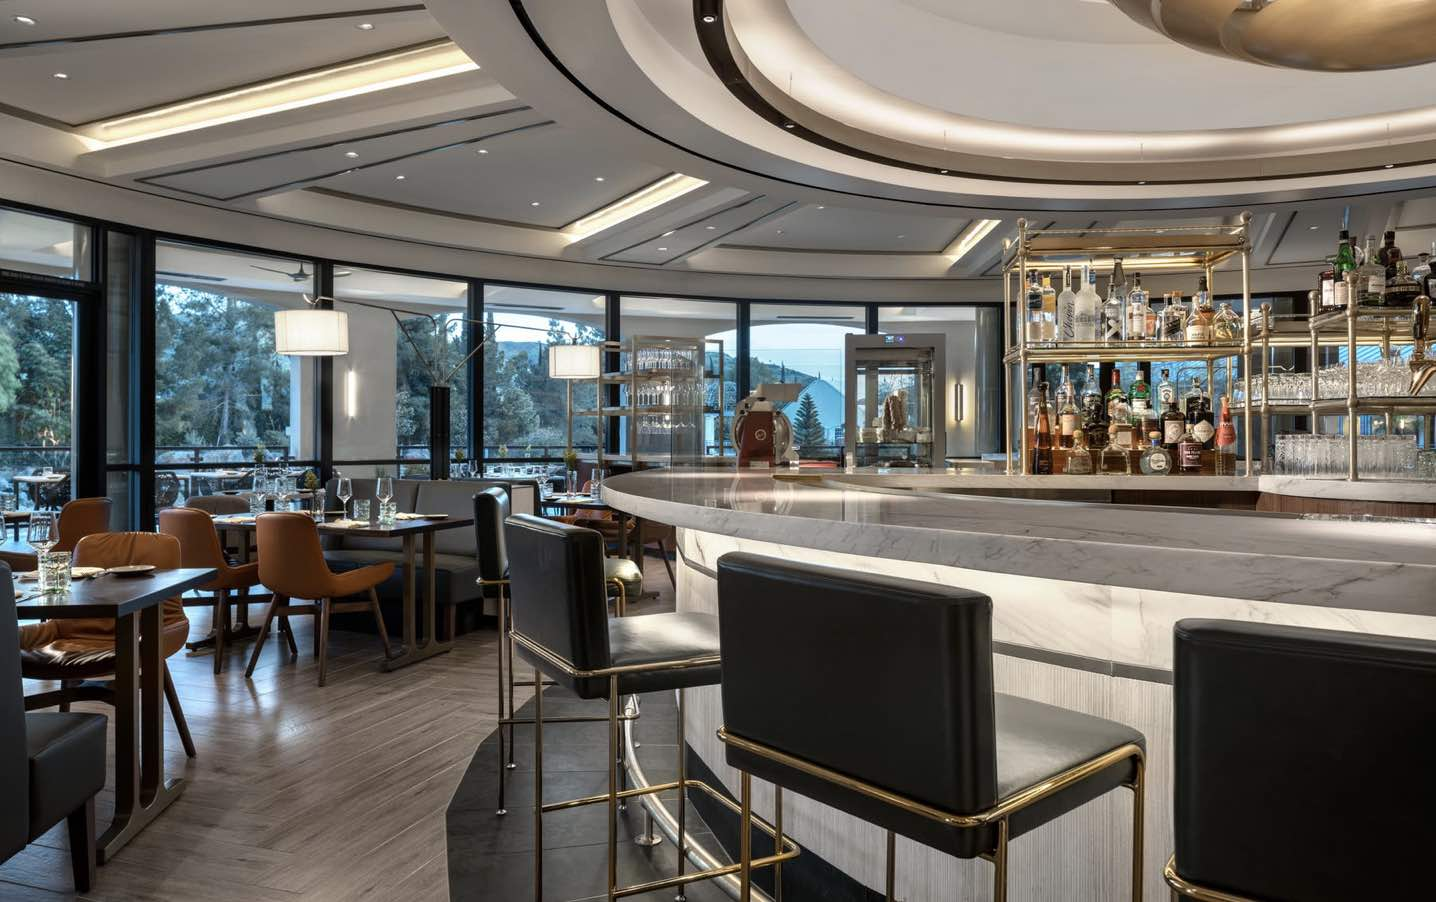 Westlake Village Restaurant Coin and Candor bar and seating